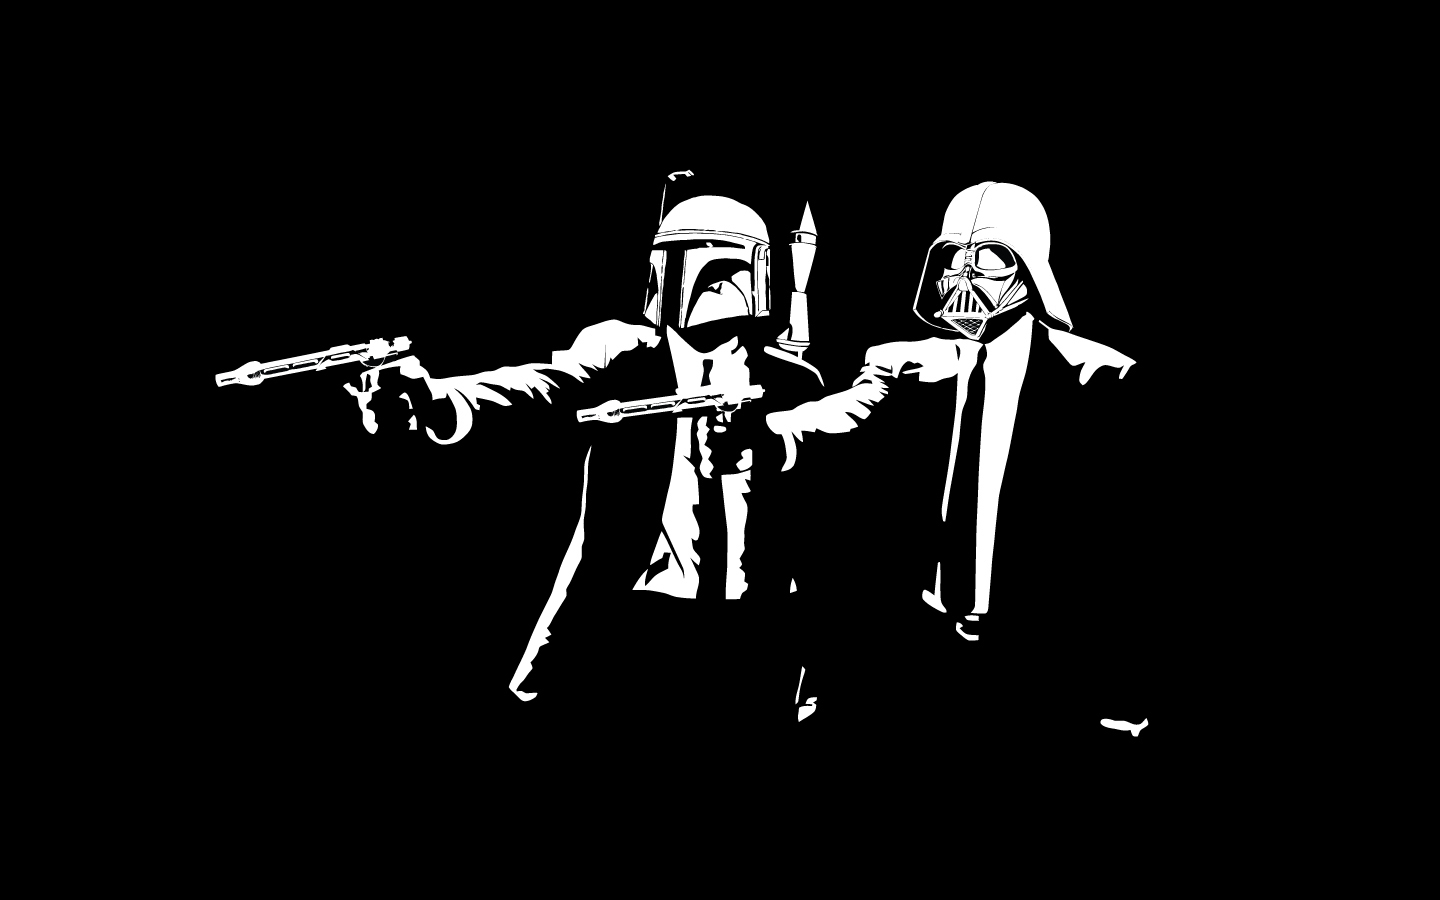 Star wars star wars pulp fiction